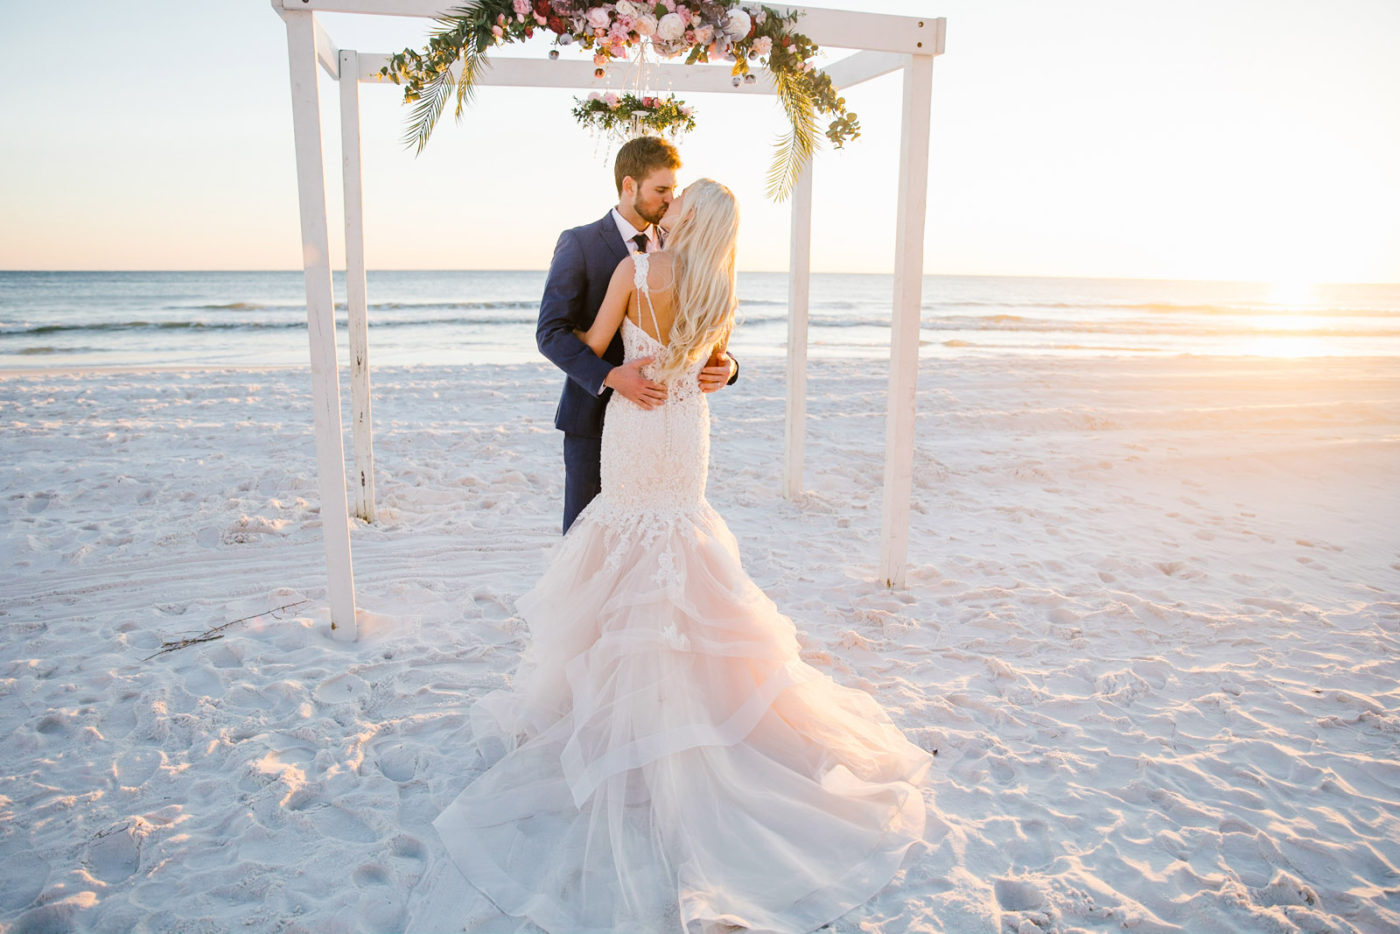 Top Beaches on the Gold Coast for Your Dream Wedding